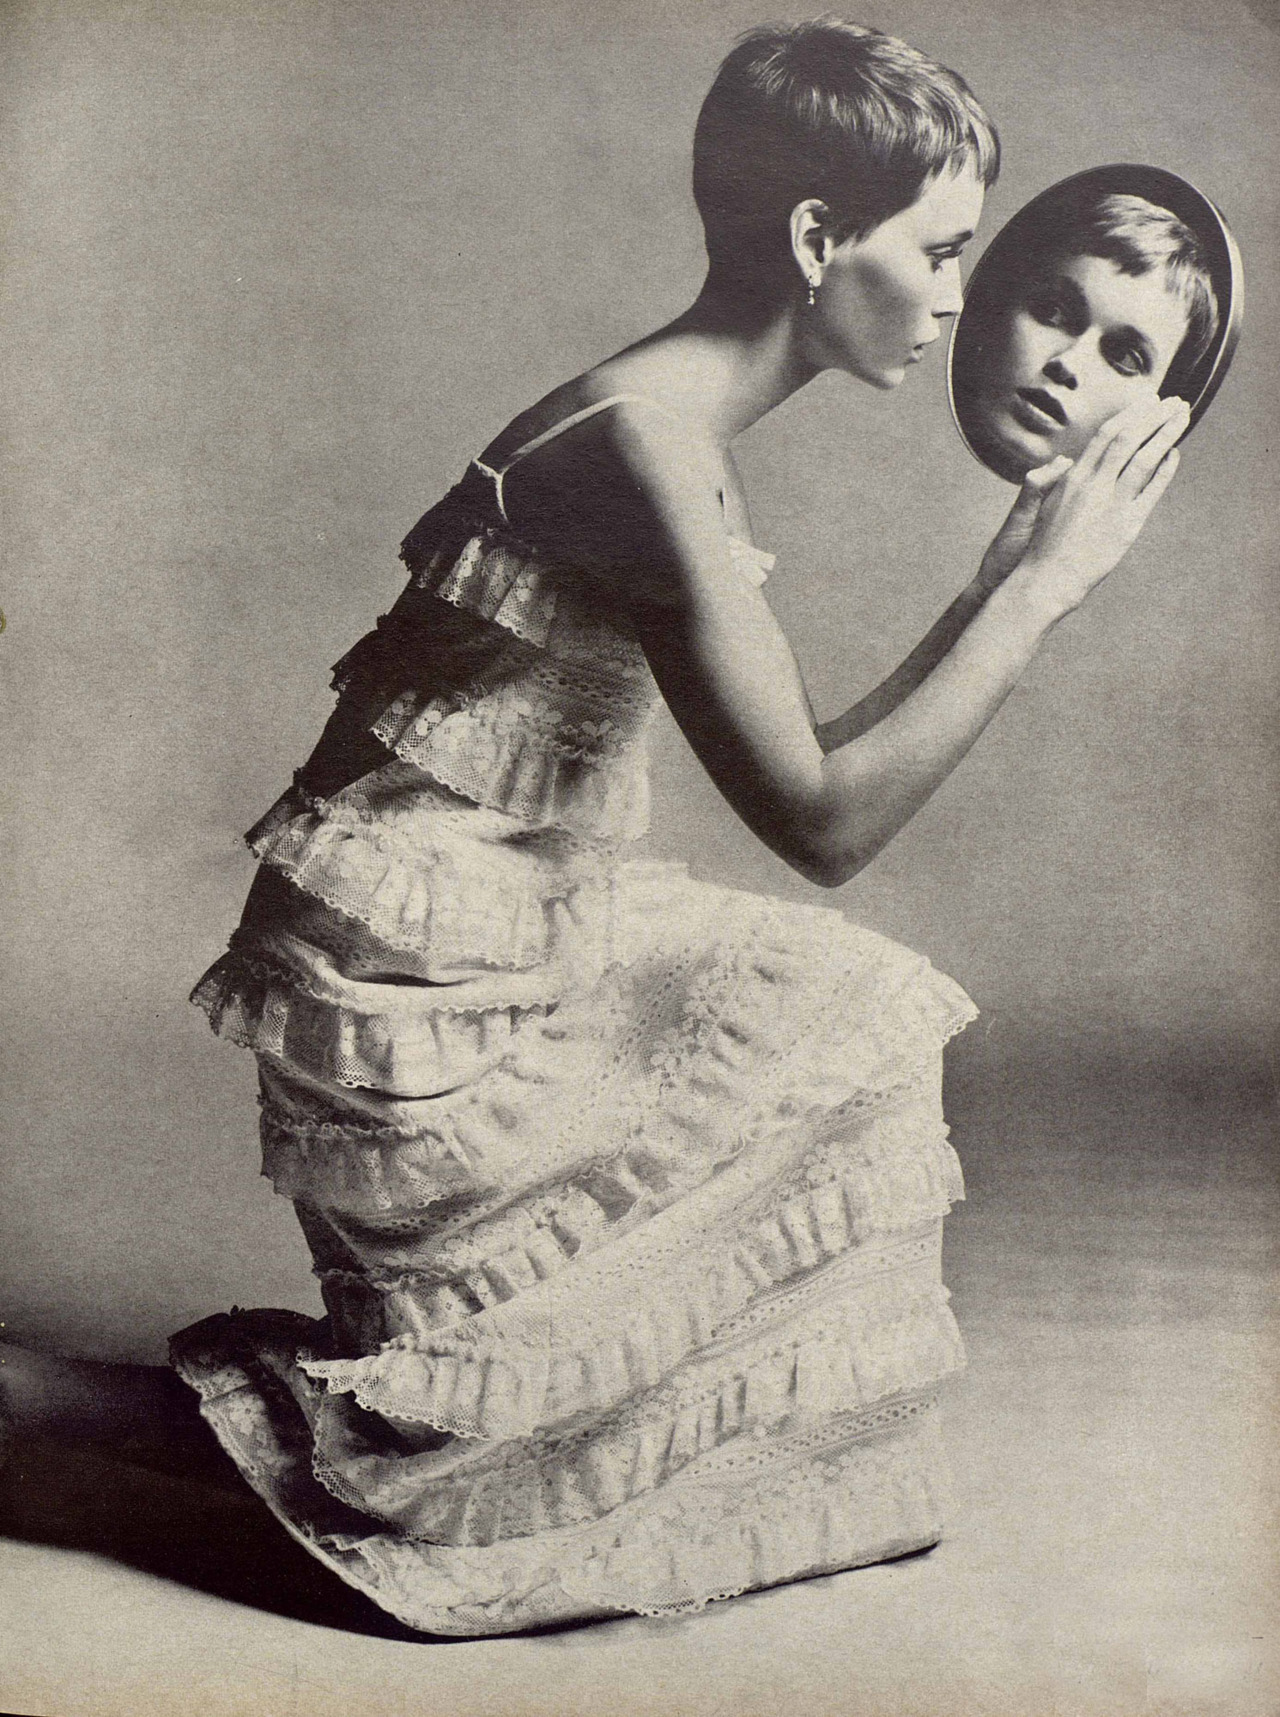 Richard Avedon, Mia Farrow, Vogue, 1966